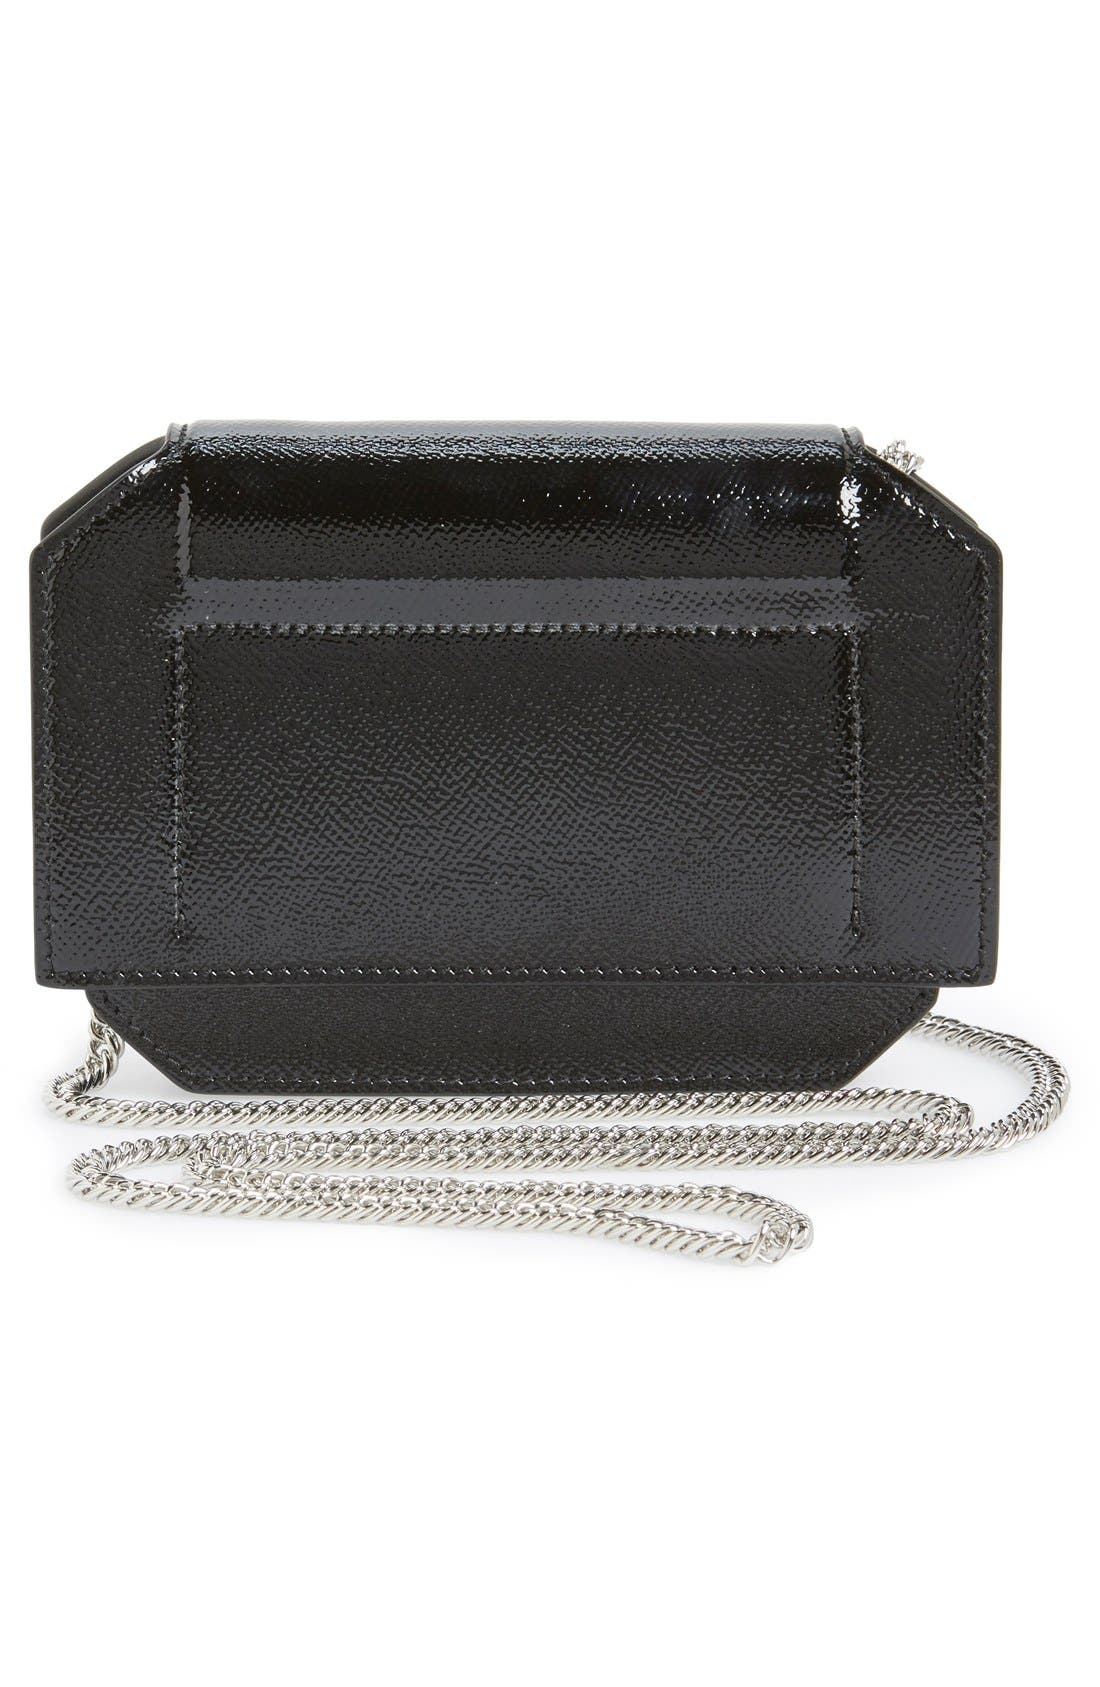 'Bow Cut' Patent Leather Wallet on a Chain,                             Alternate thumbnail 4, color,                             Black